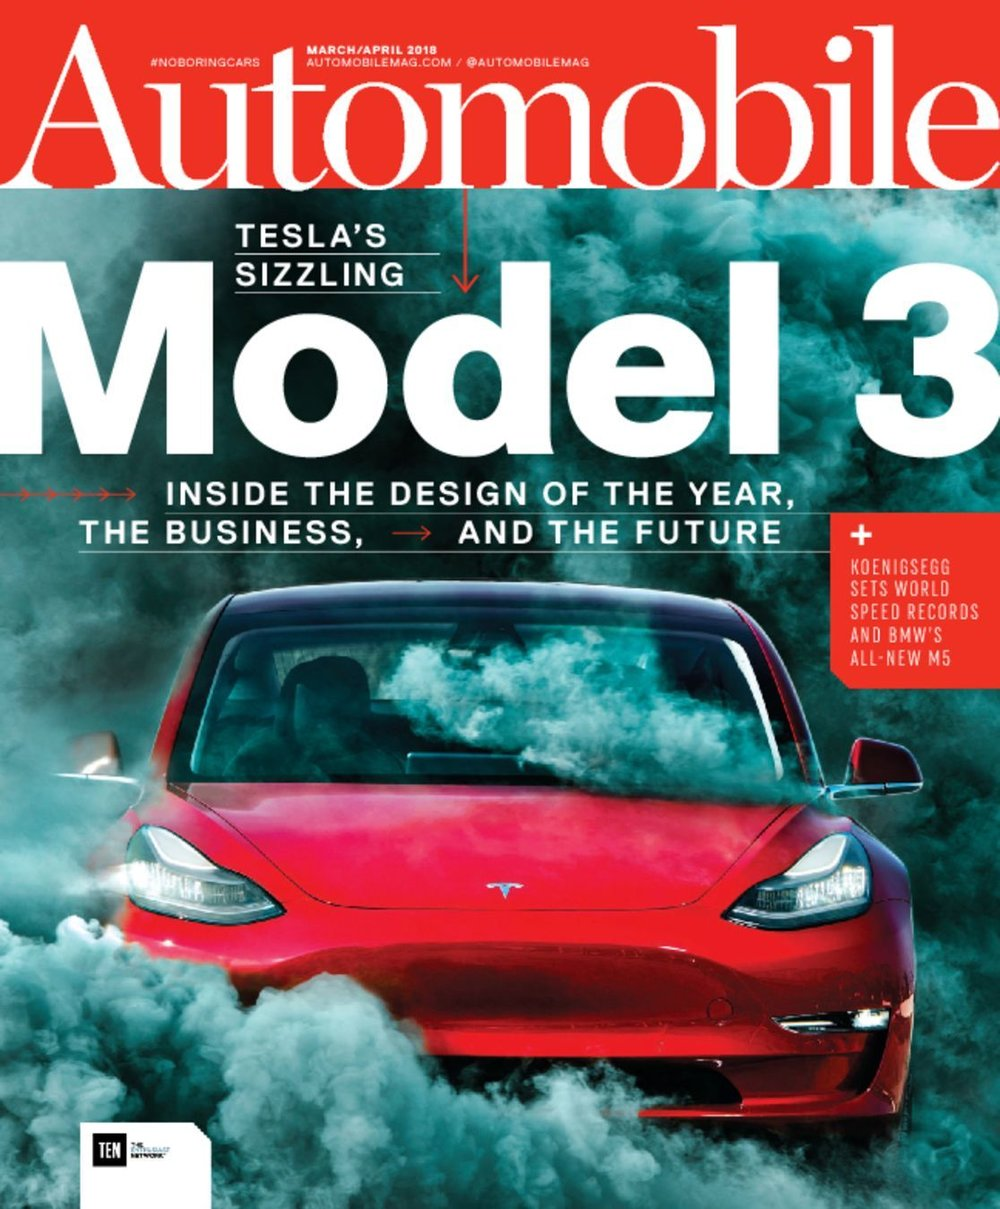 5533-automobile-Cover-2018-March-1-Issue.jpg